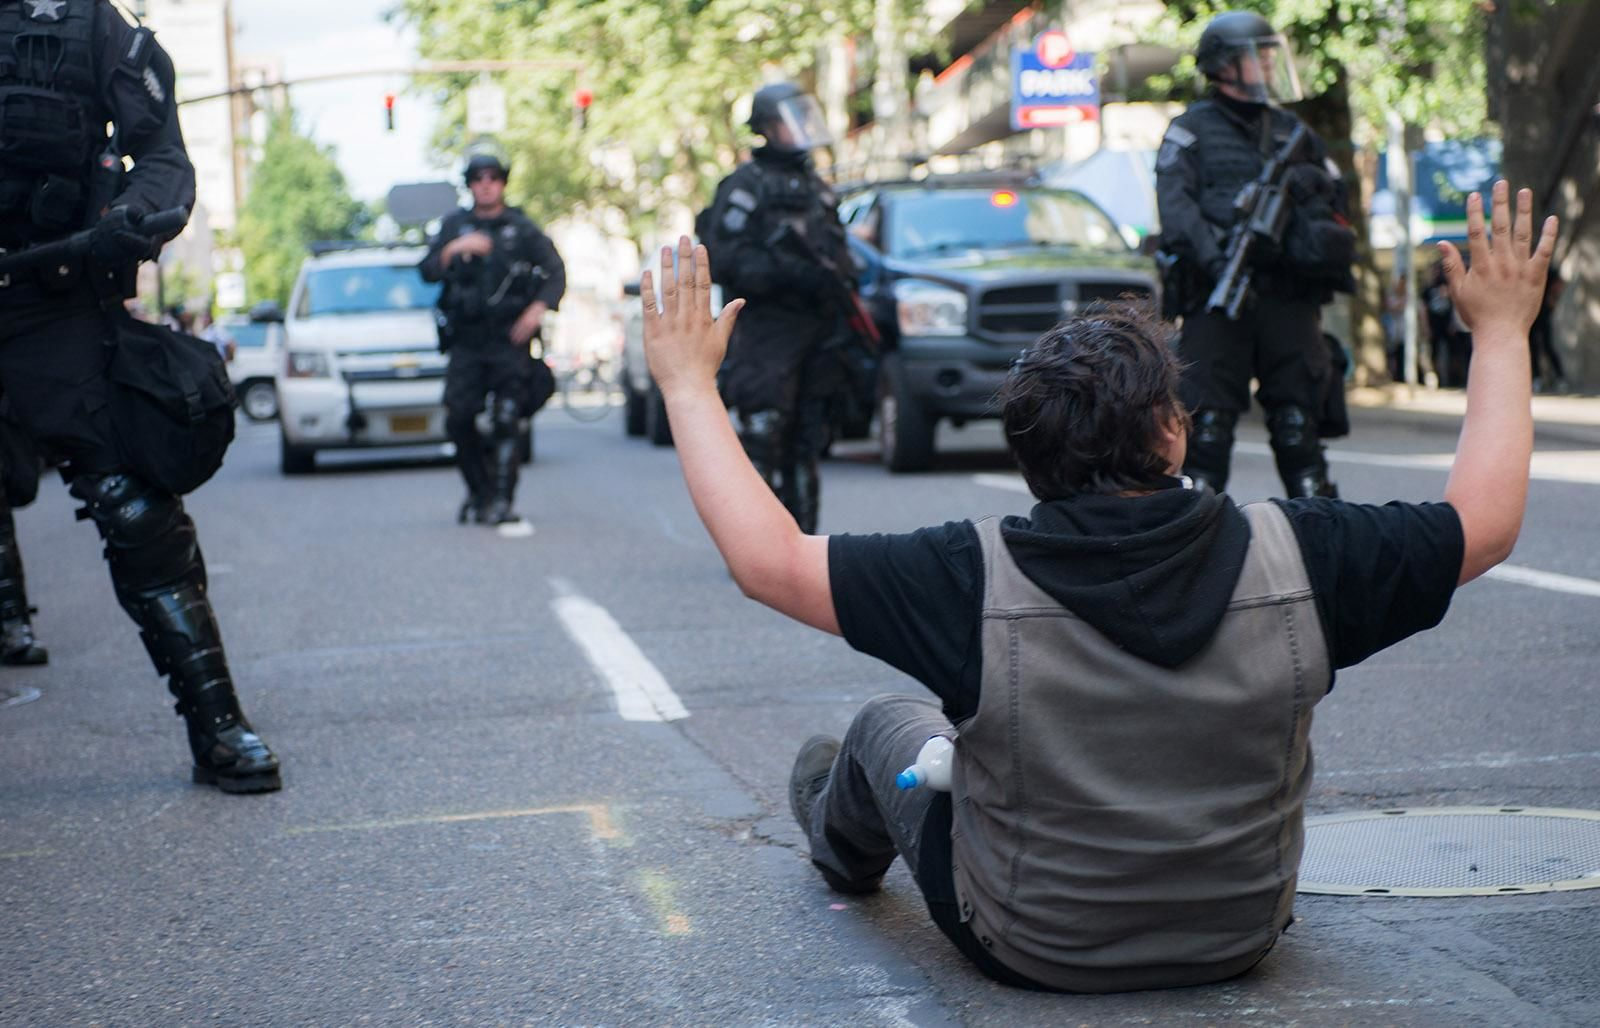 A 'Trump Free Speech Rally' in Portland's Terry Schrunk Plaza was surrounded by several groups staging counter-protests Sunday, ending in at least 14 arrests and prompting police to close the adjacent Chapman Square. (KATU photo taken June 4, 2017 by Tristan Fortsch)